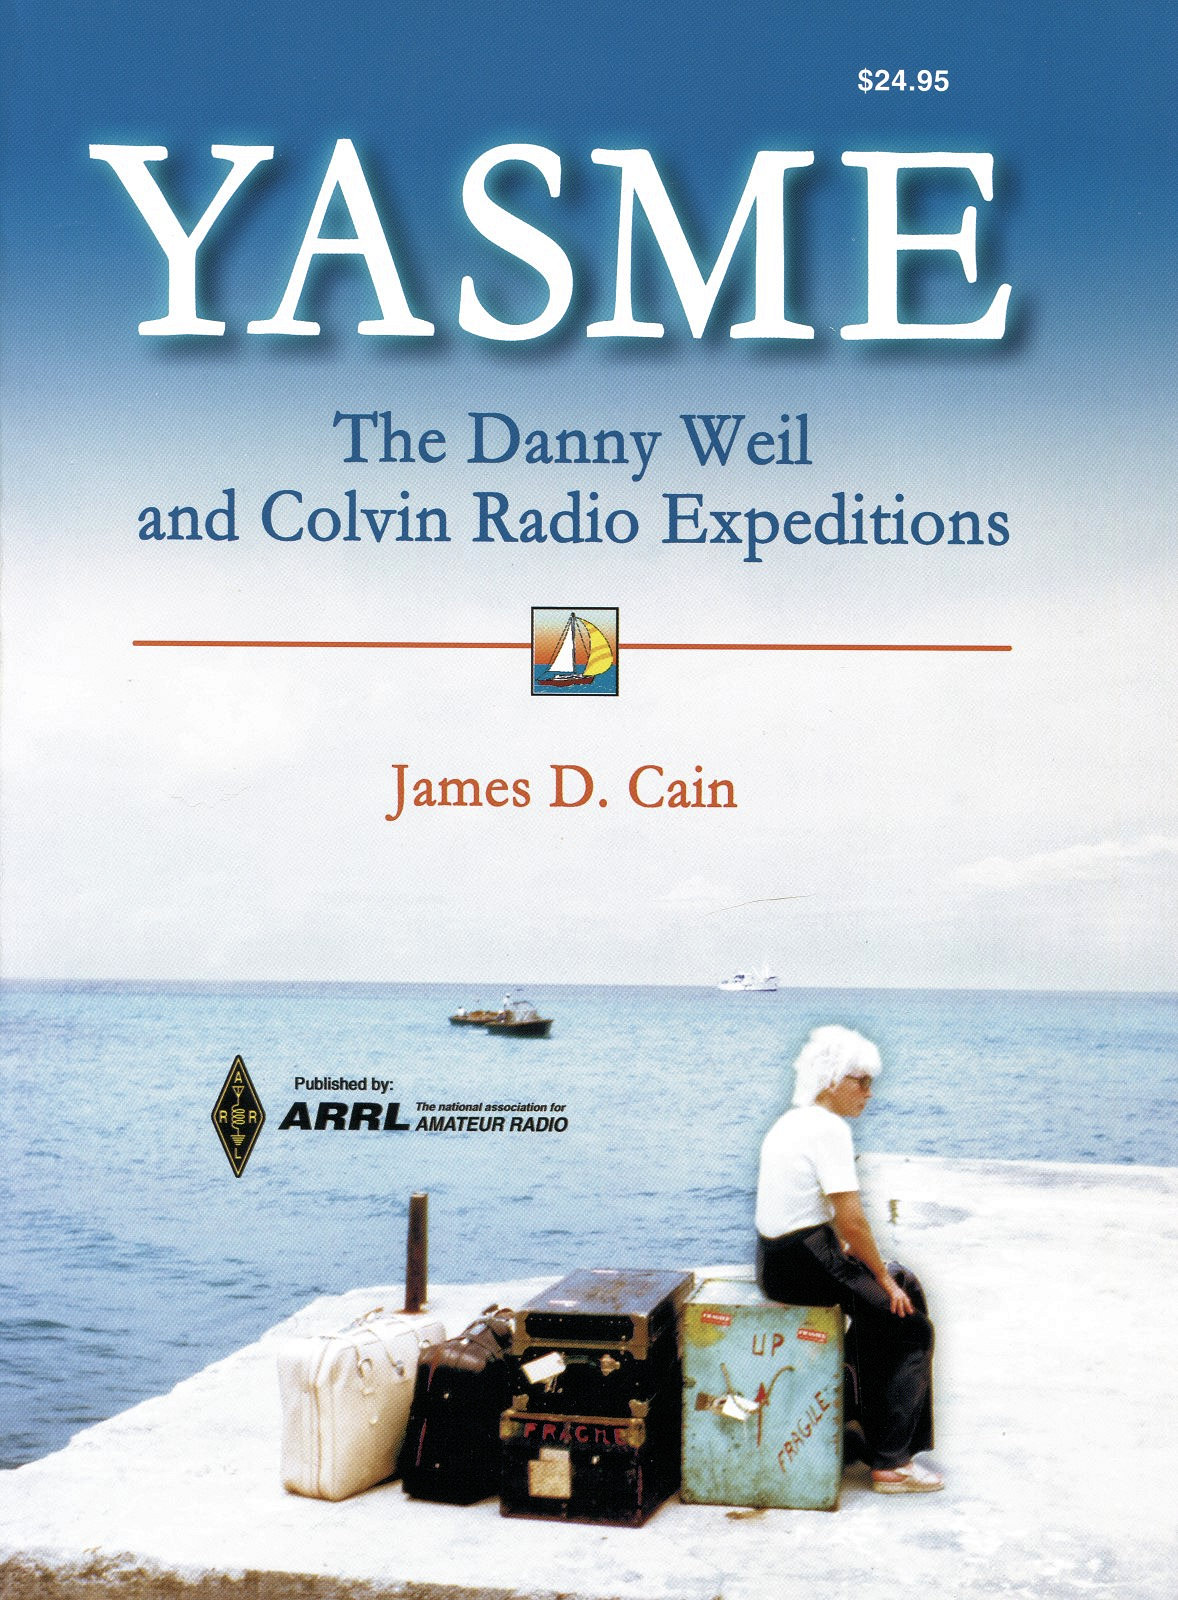 Yasme Foundation Releases Chronicles of Amateur Radio DX History